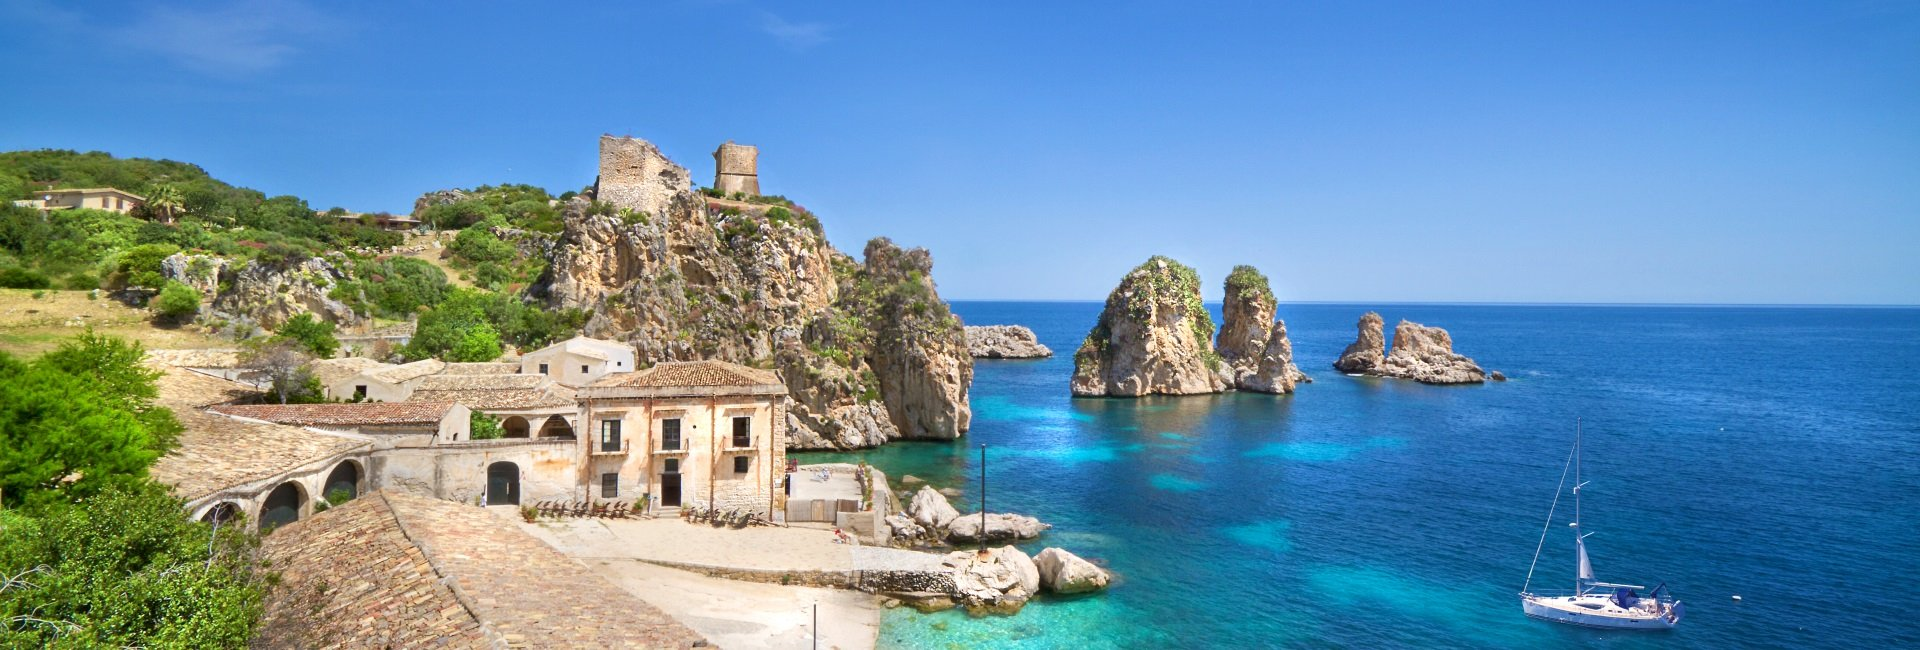 sicilie-scopello-italie.jpg